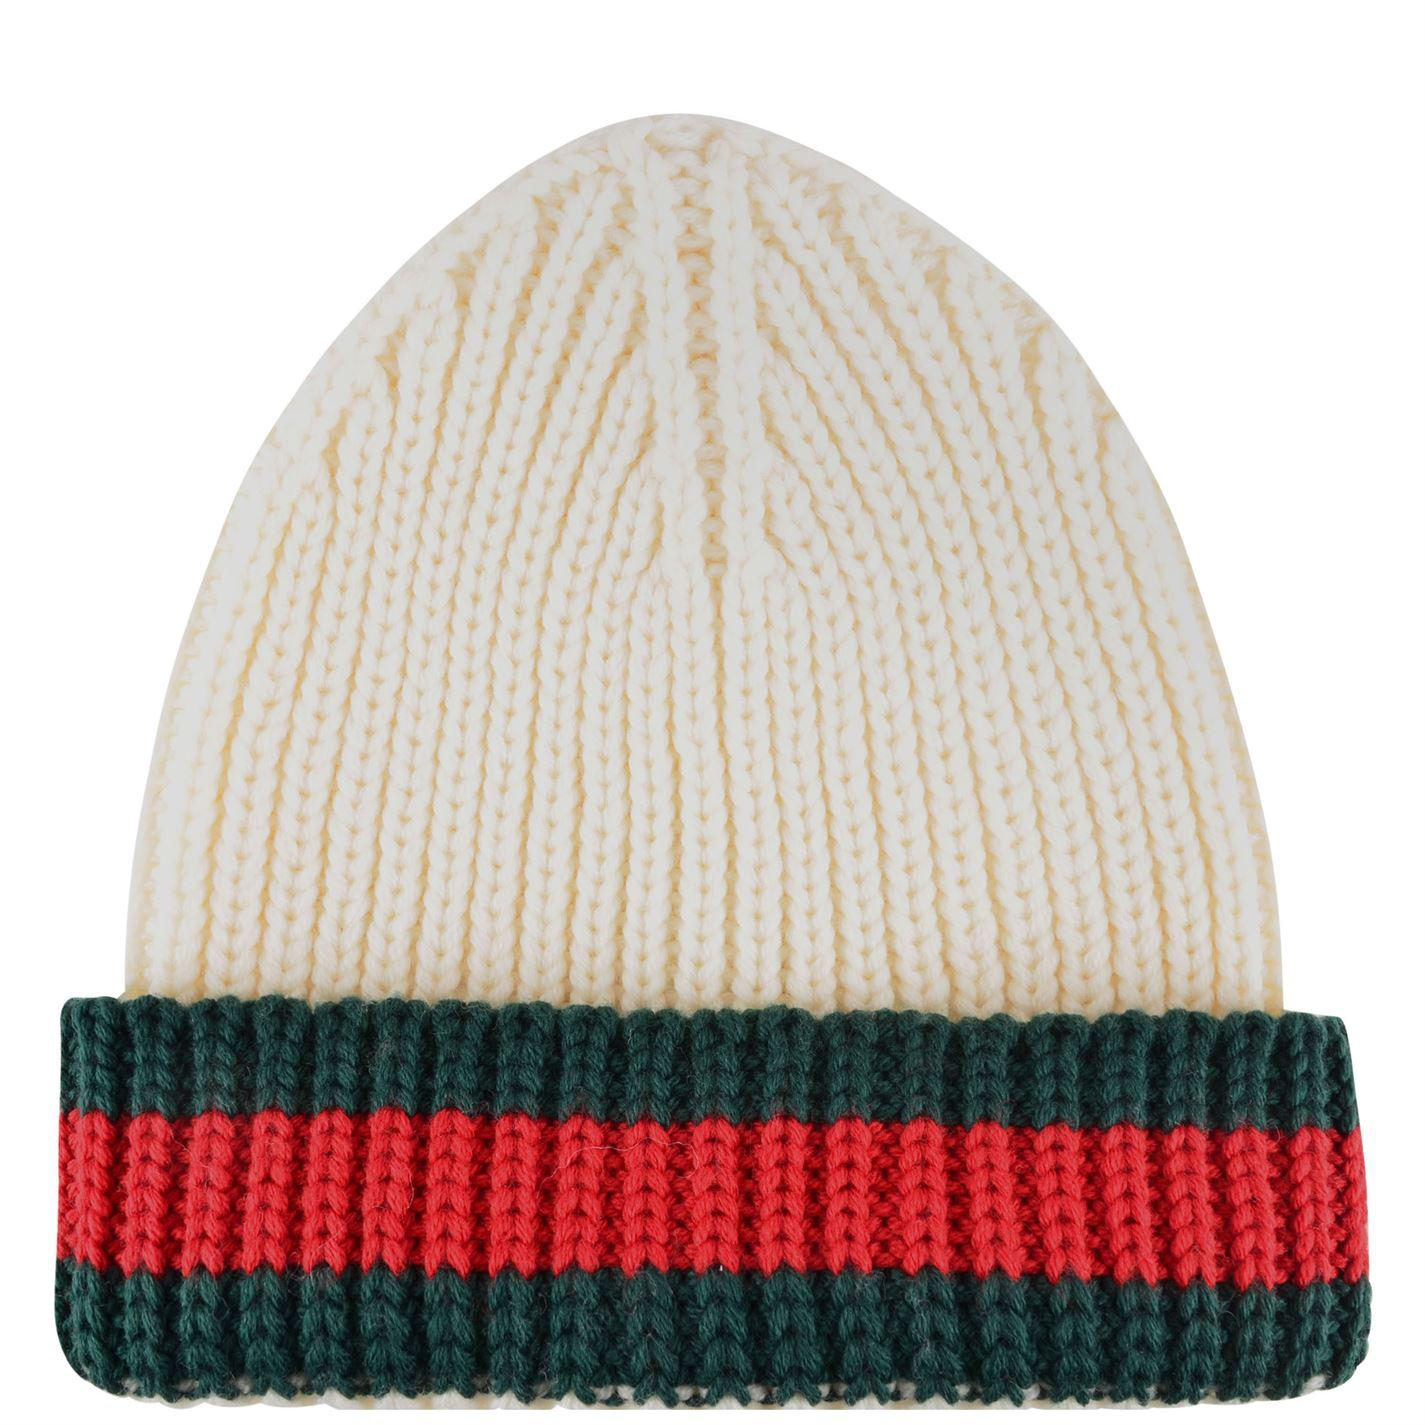 Lyst - Gucci Web Trim Beanie Hat in White for Men a09ffb6ddfa